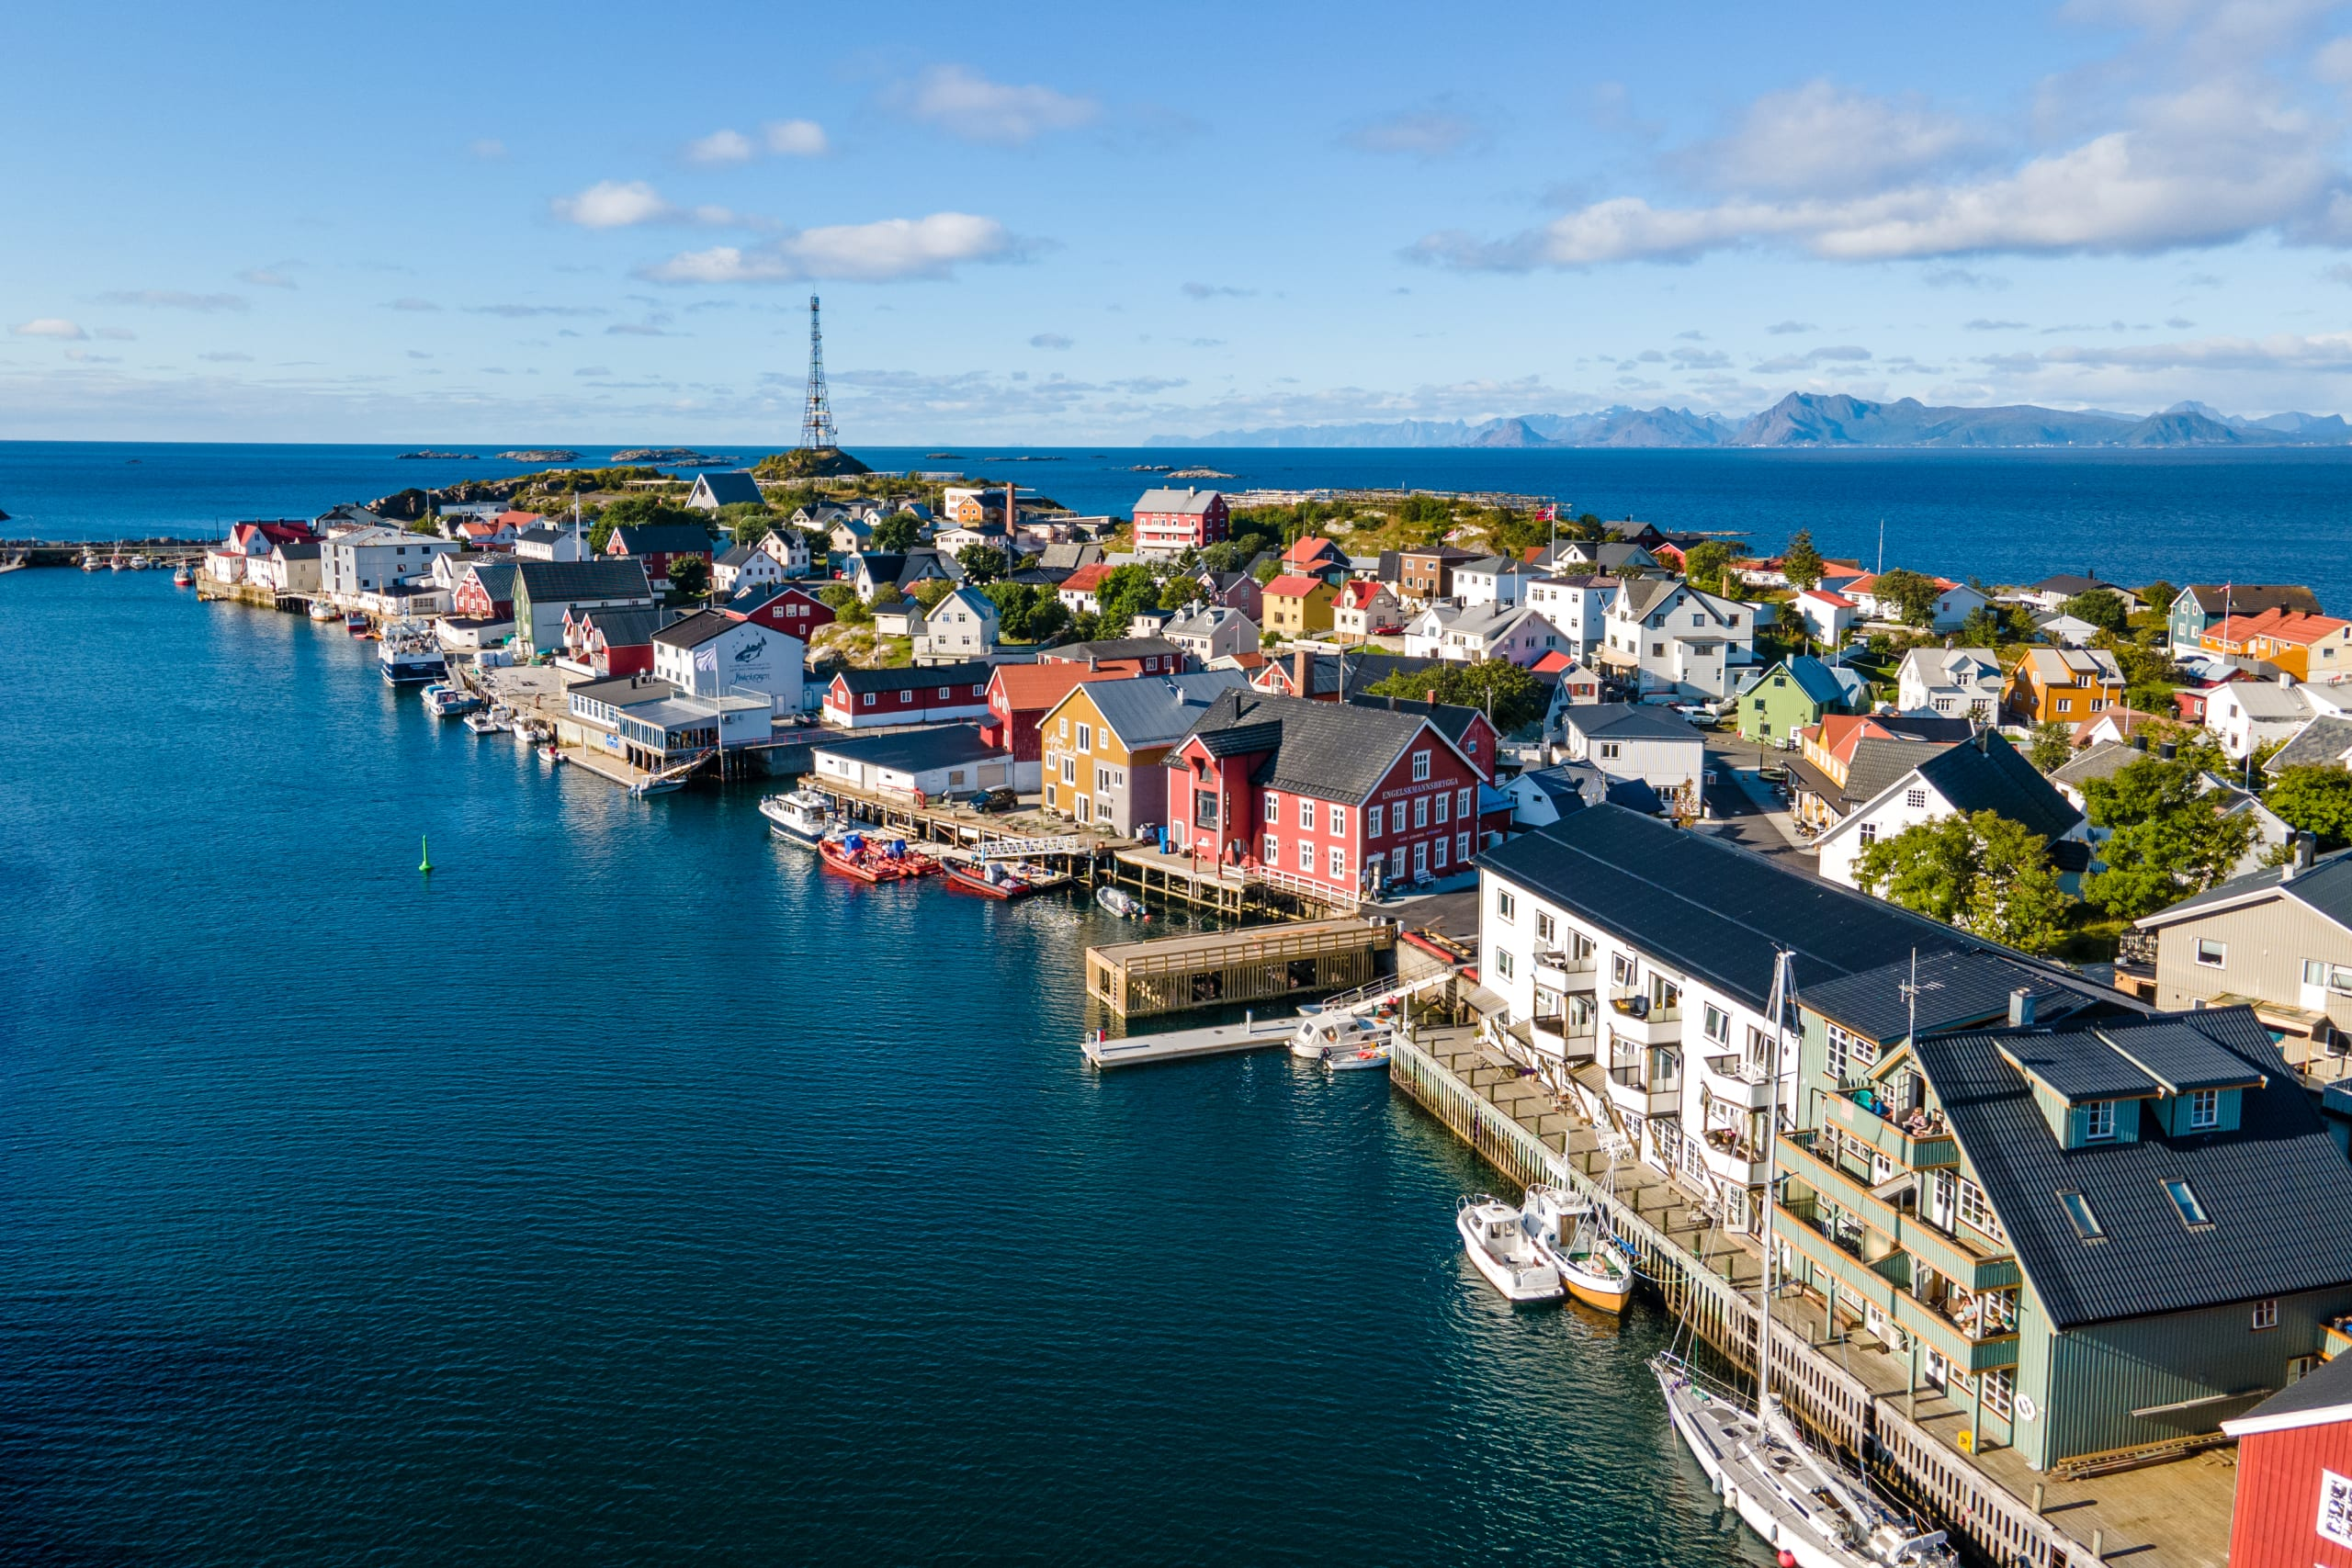 Fishing village of Henningsvær in Lofoten